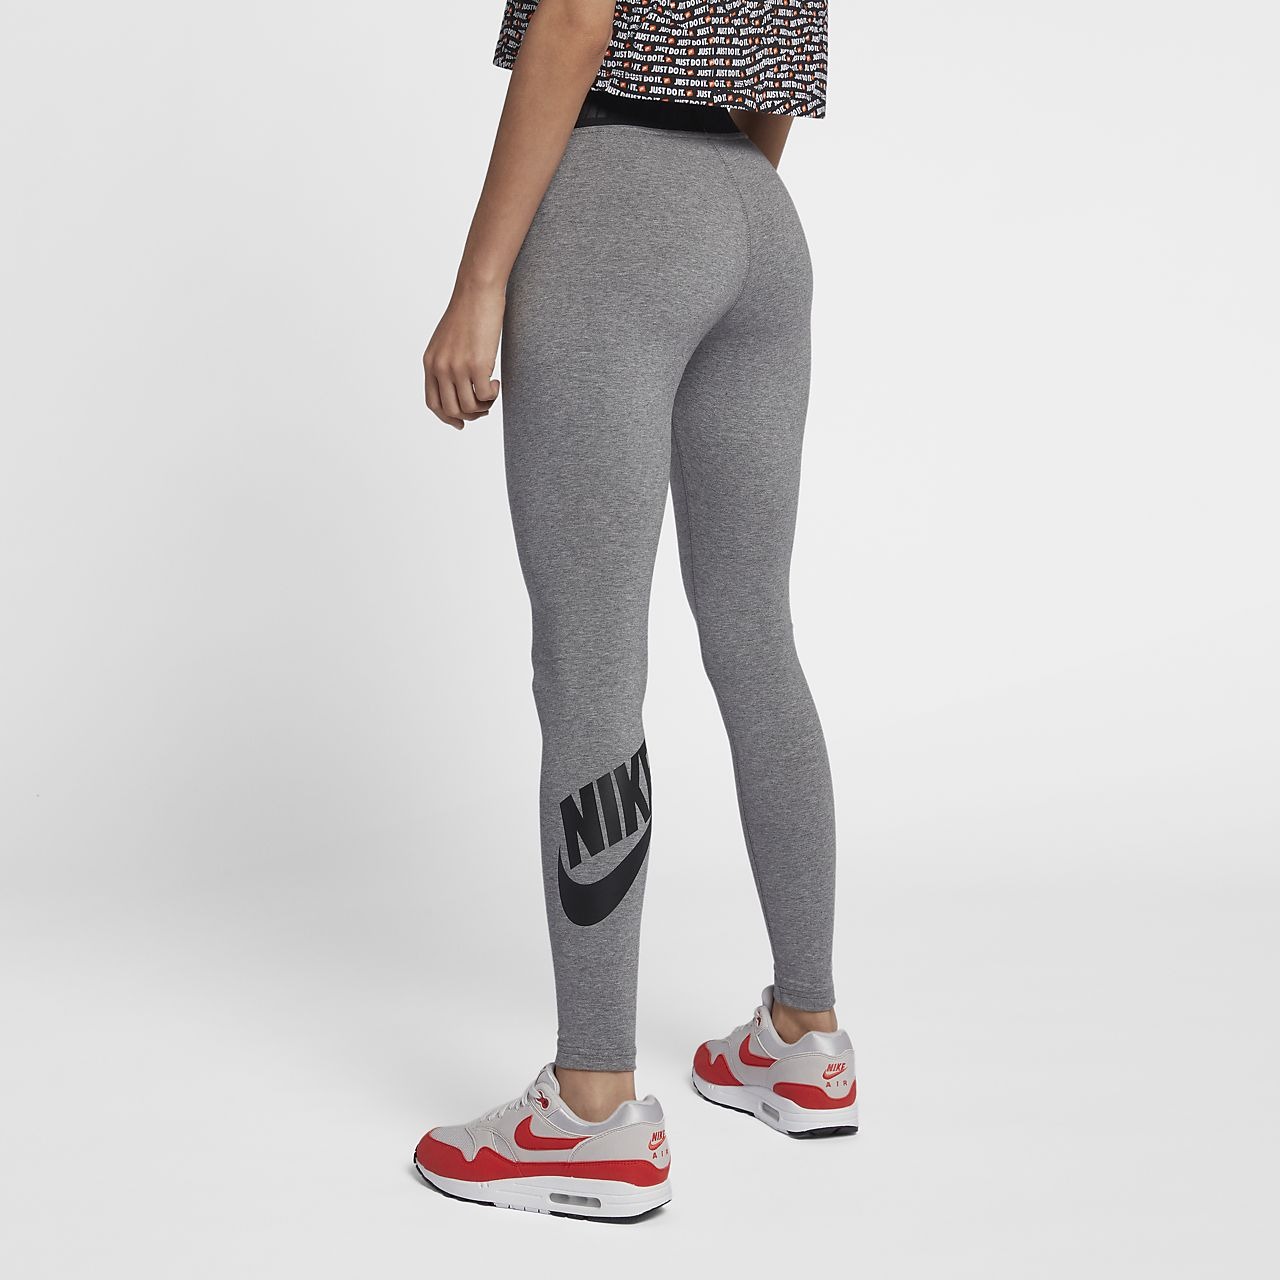 leg a see nike leggings